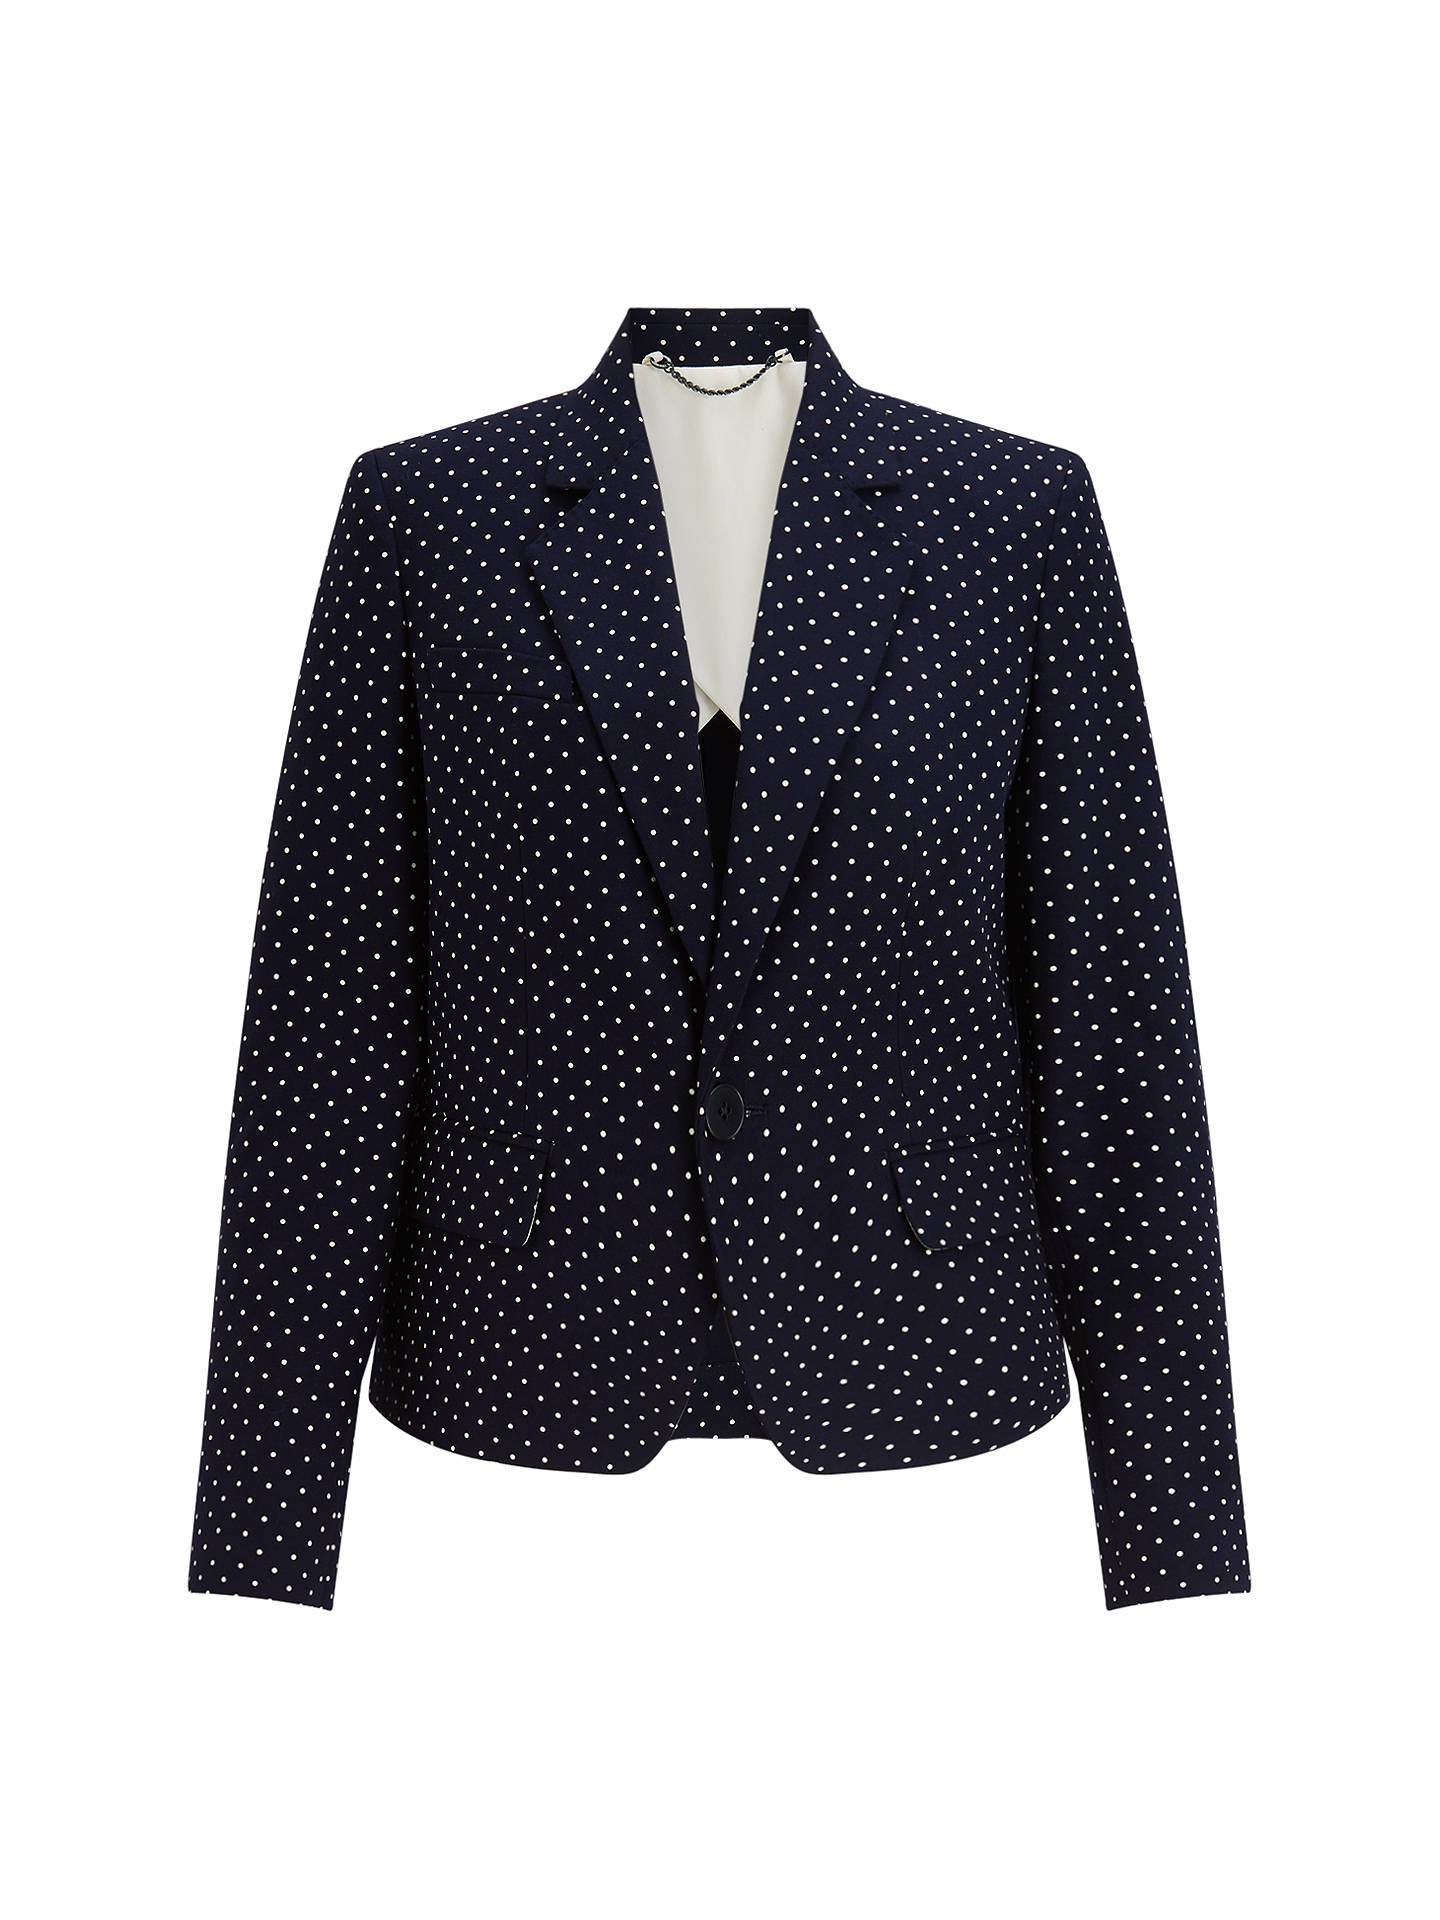 BuyJigsaw Polka Dot London Jacket, Navy, 10 Online at johnlewis.com